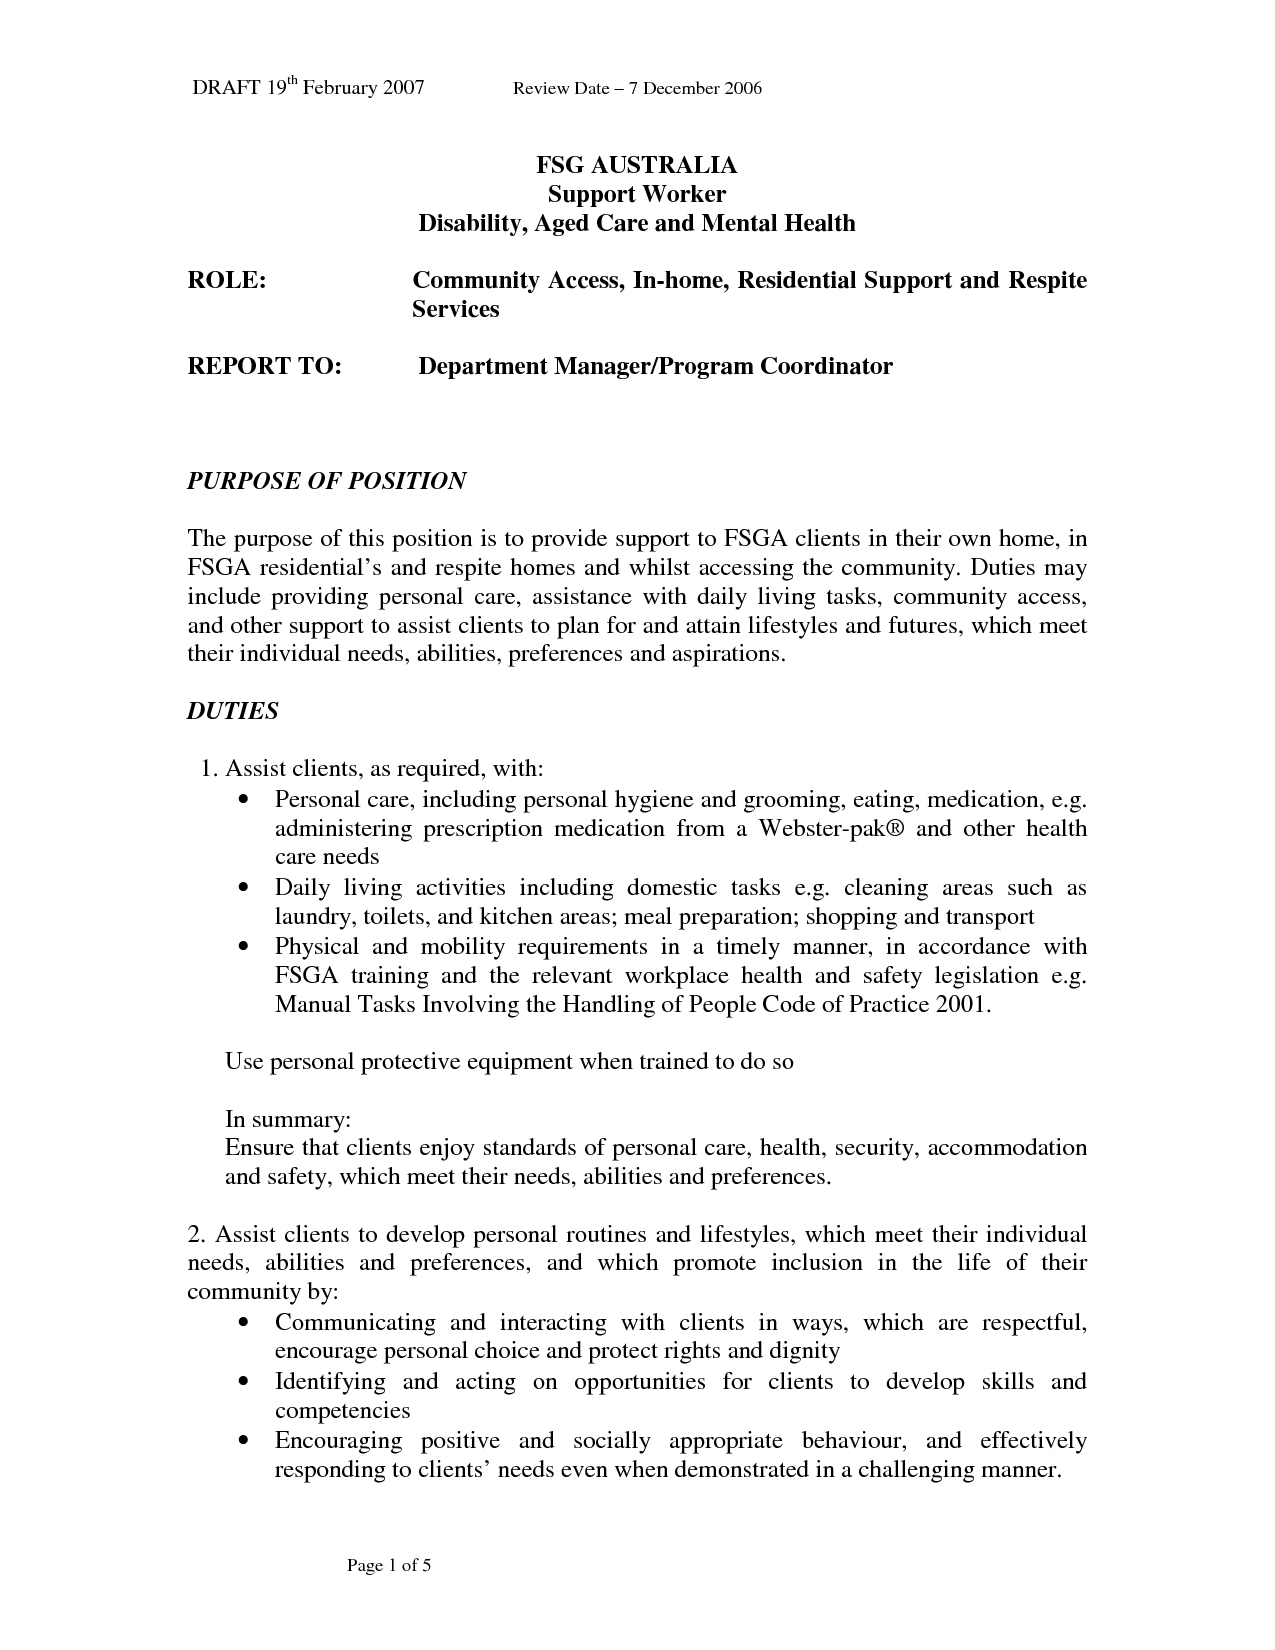 Cover Letter Mental Health Worker Letters Support Photo